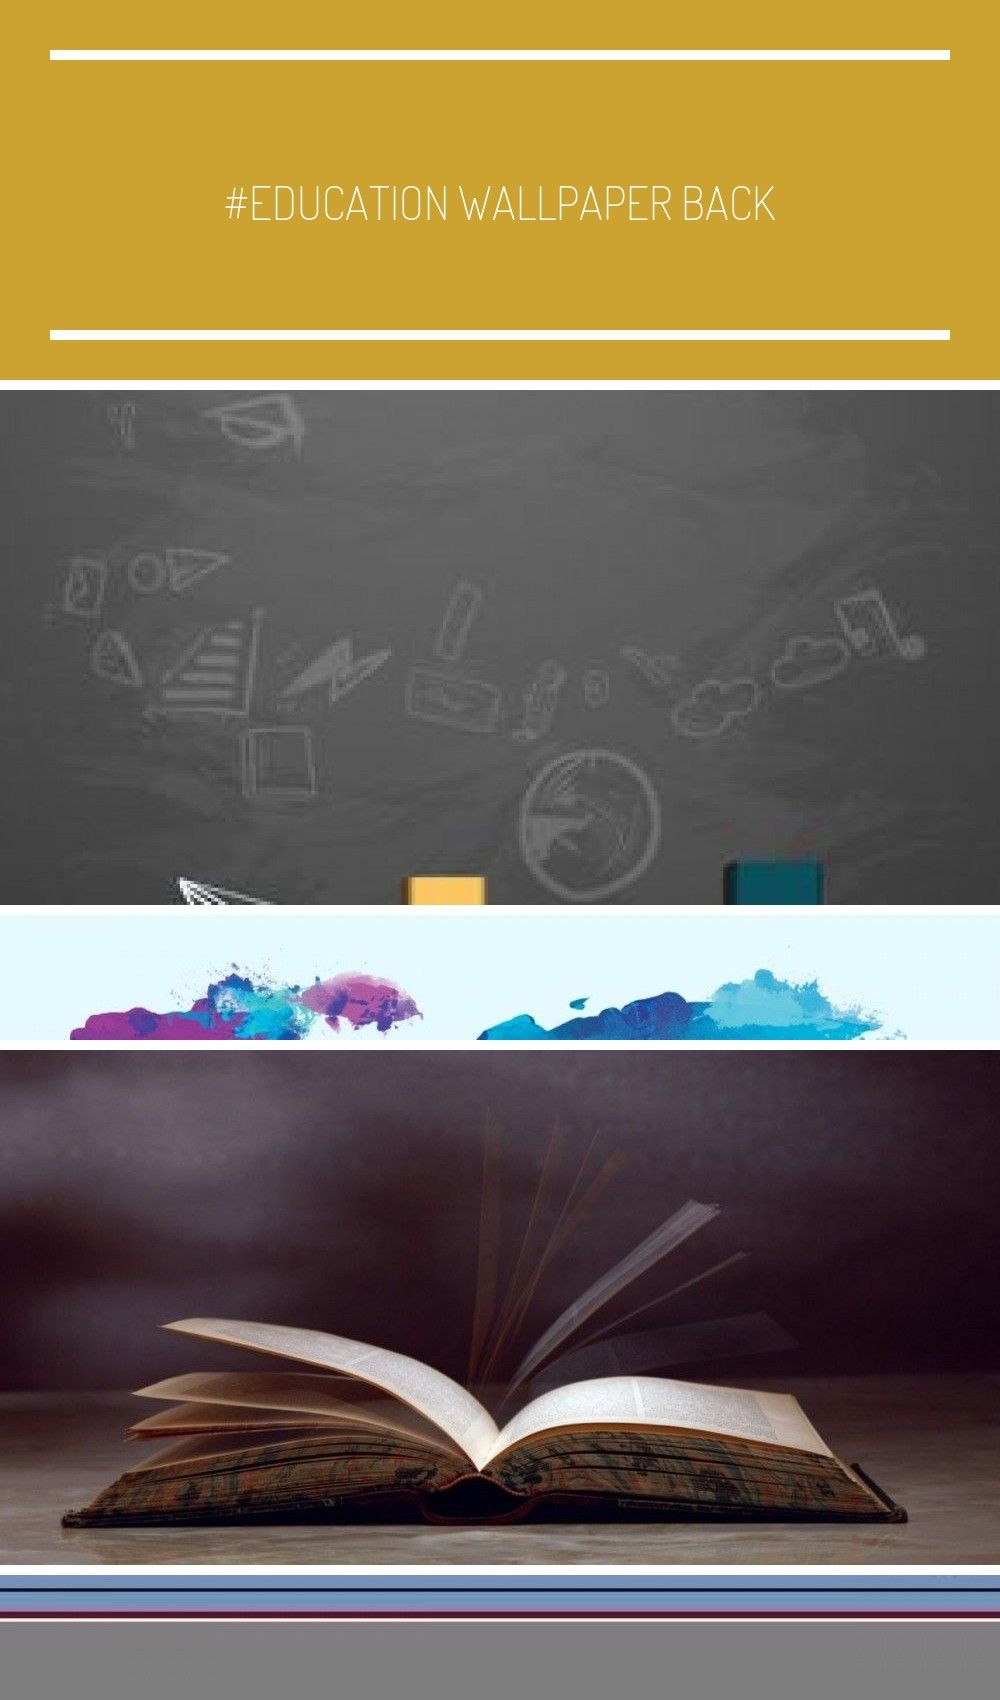 Education Wallpaper Backgrounds Book Knowledge Education Poster Background Material Education Wallpaper Back Education Poster Wallpaper Backgrounds Wallpaper